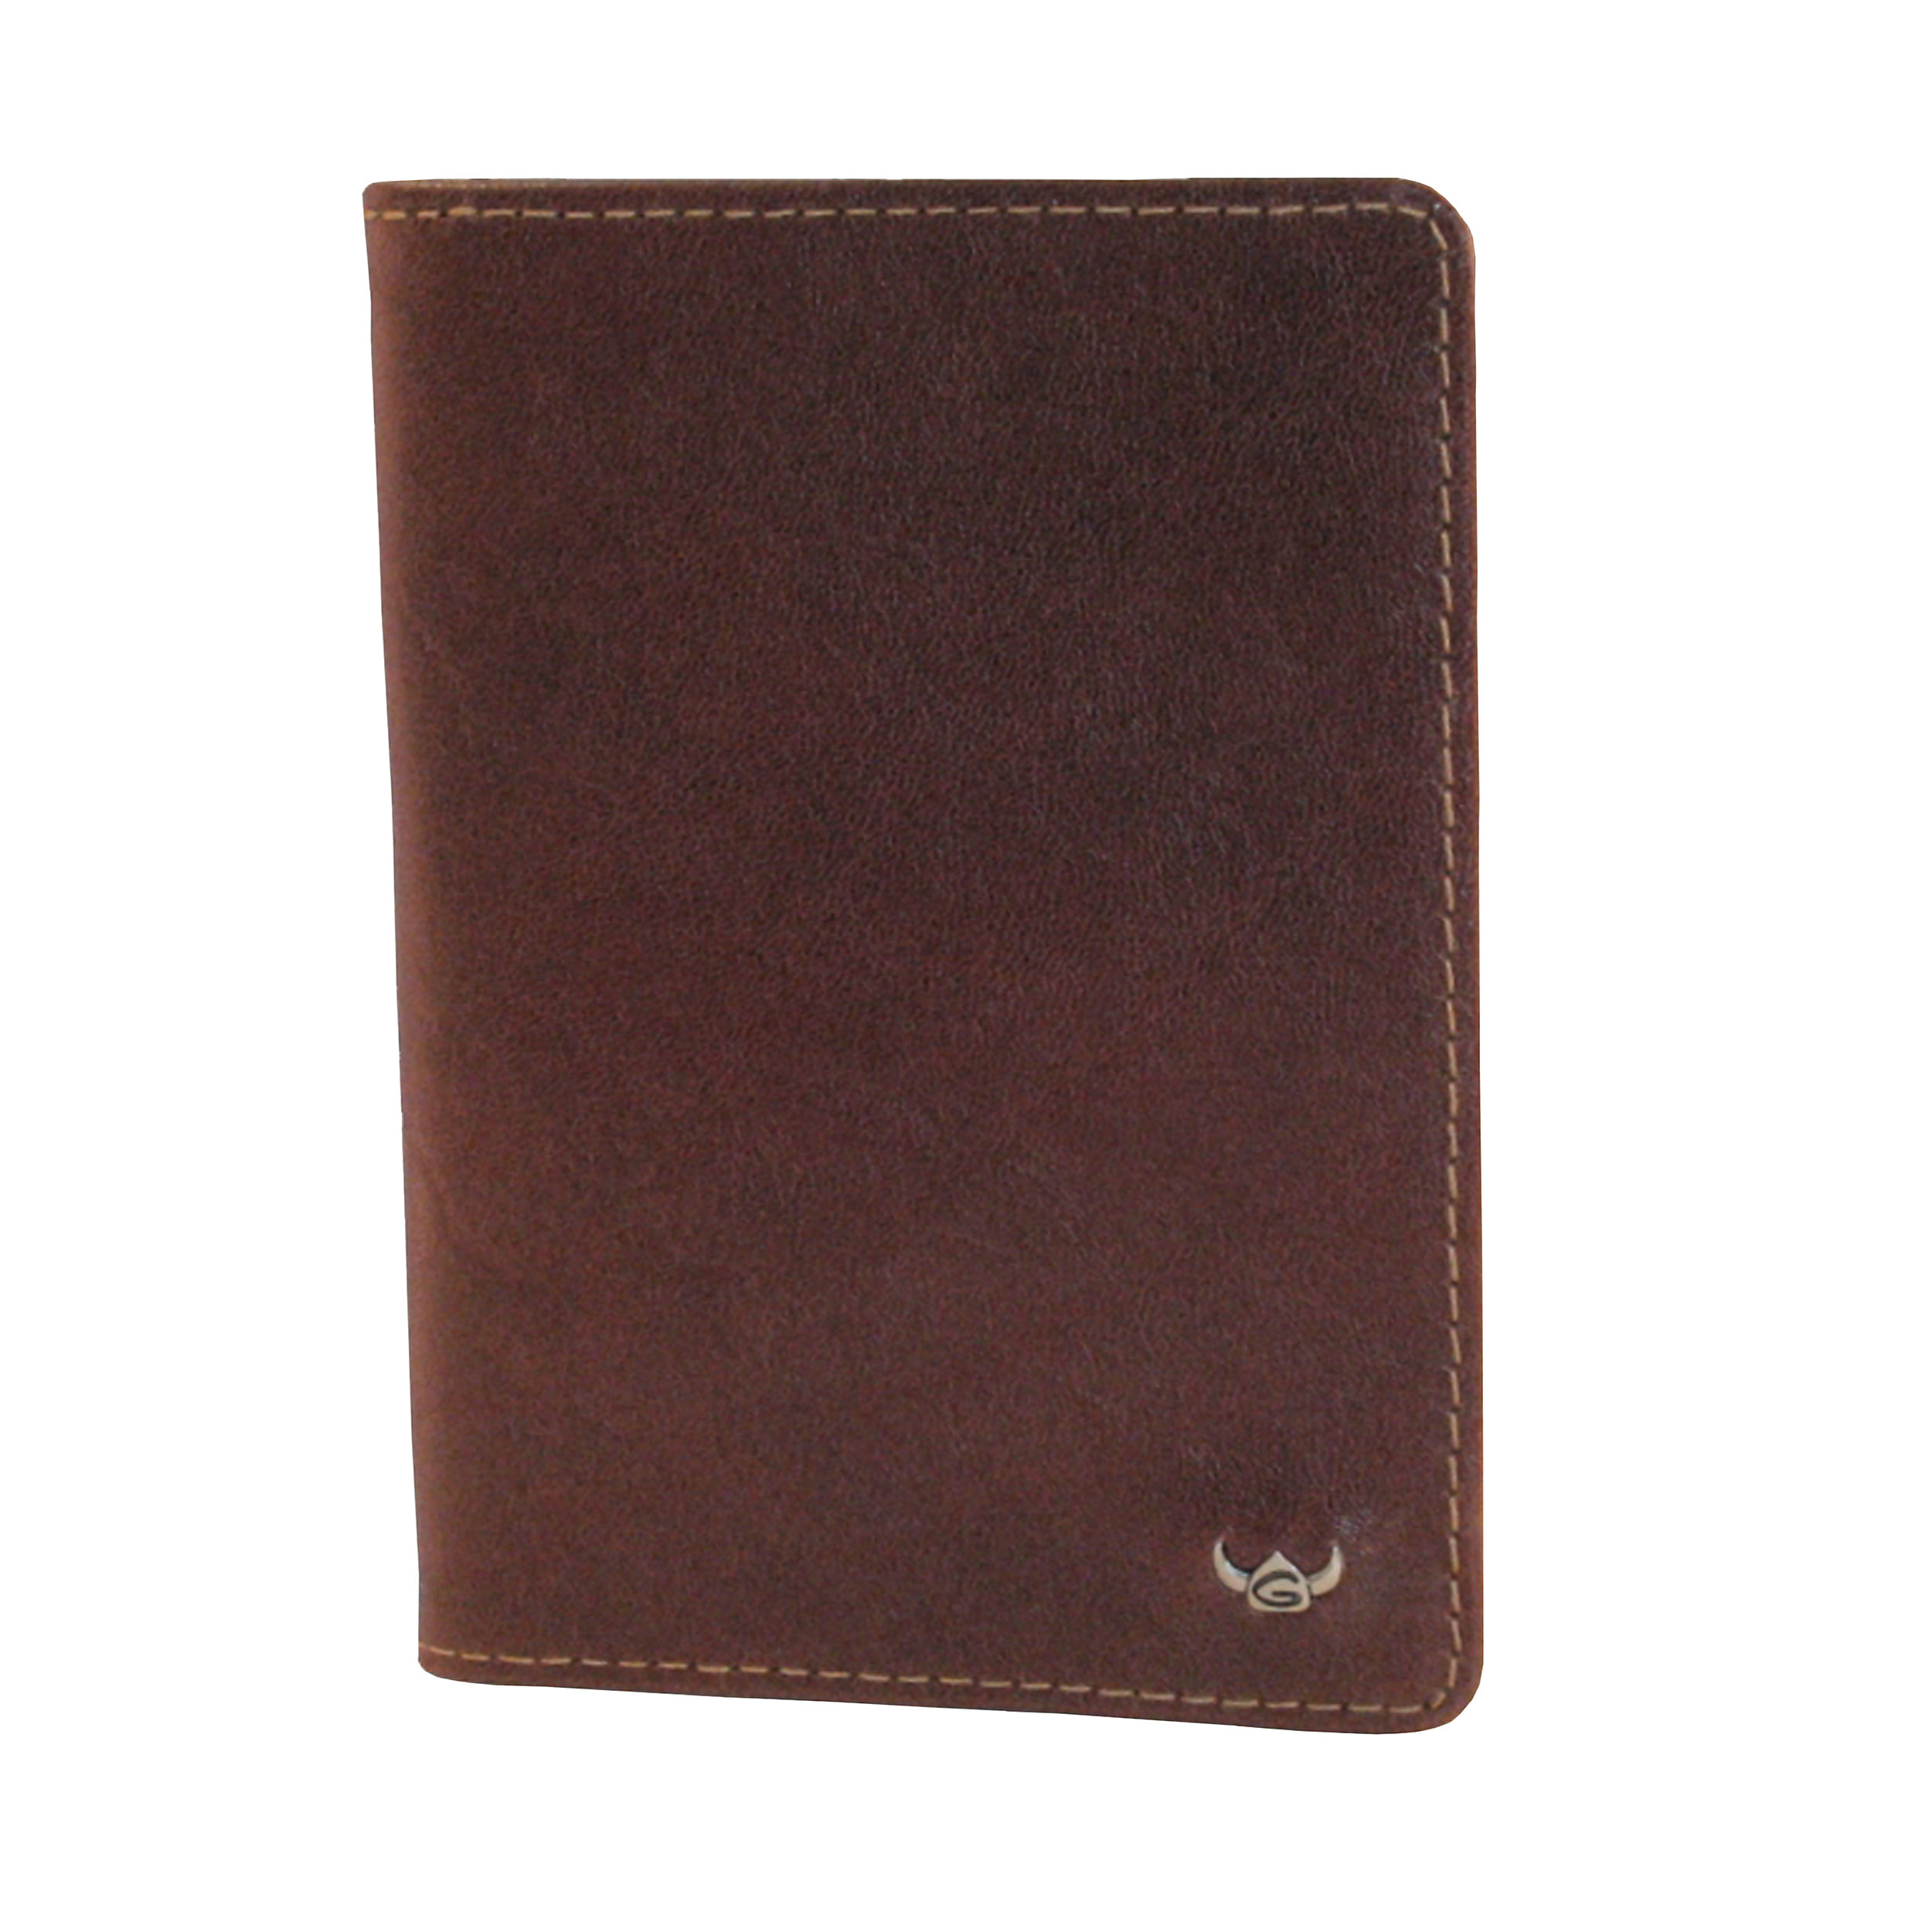 ID Holder 3cc Colorado RFID Protect